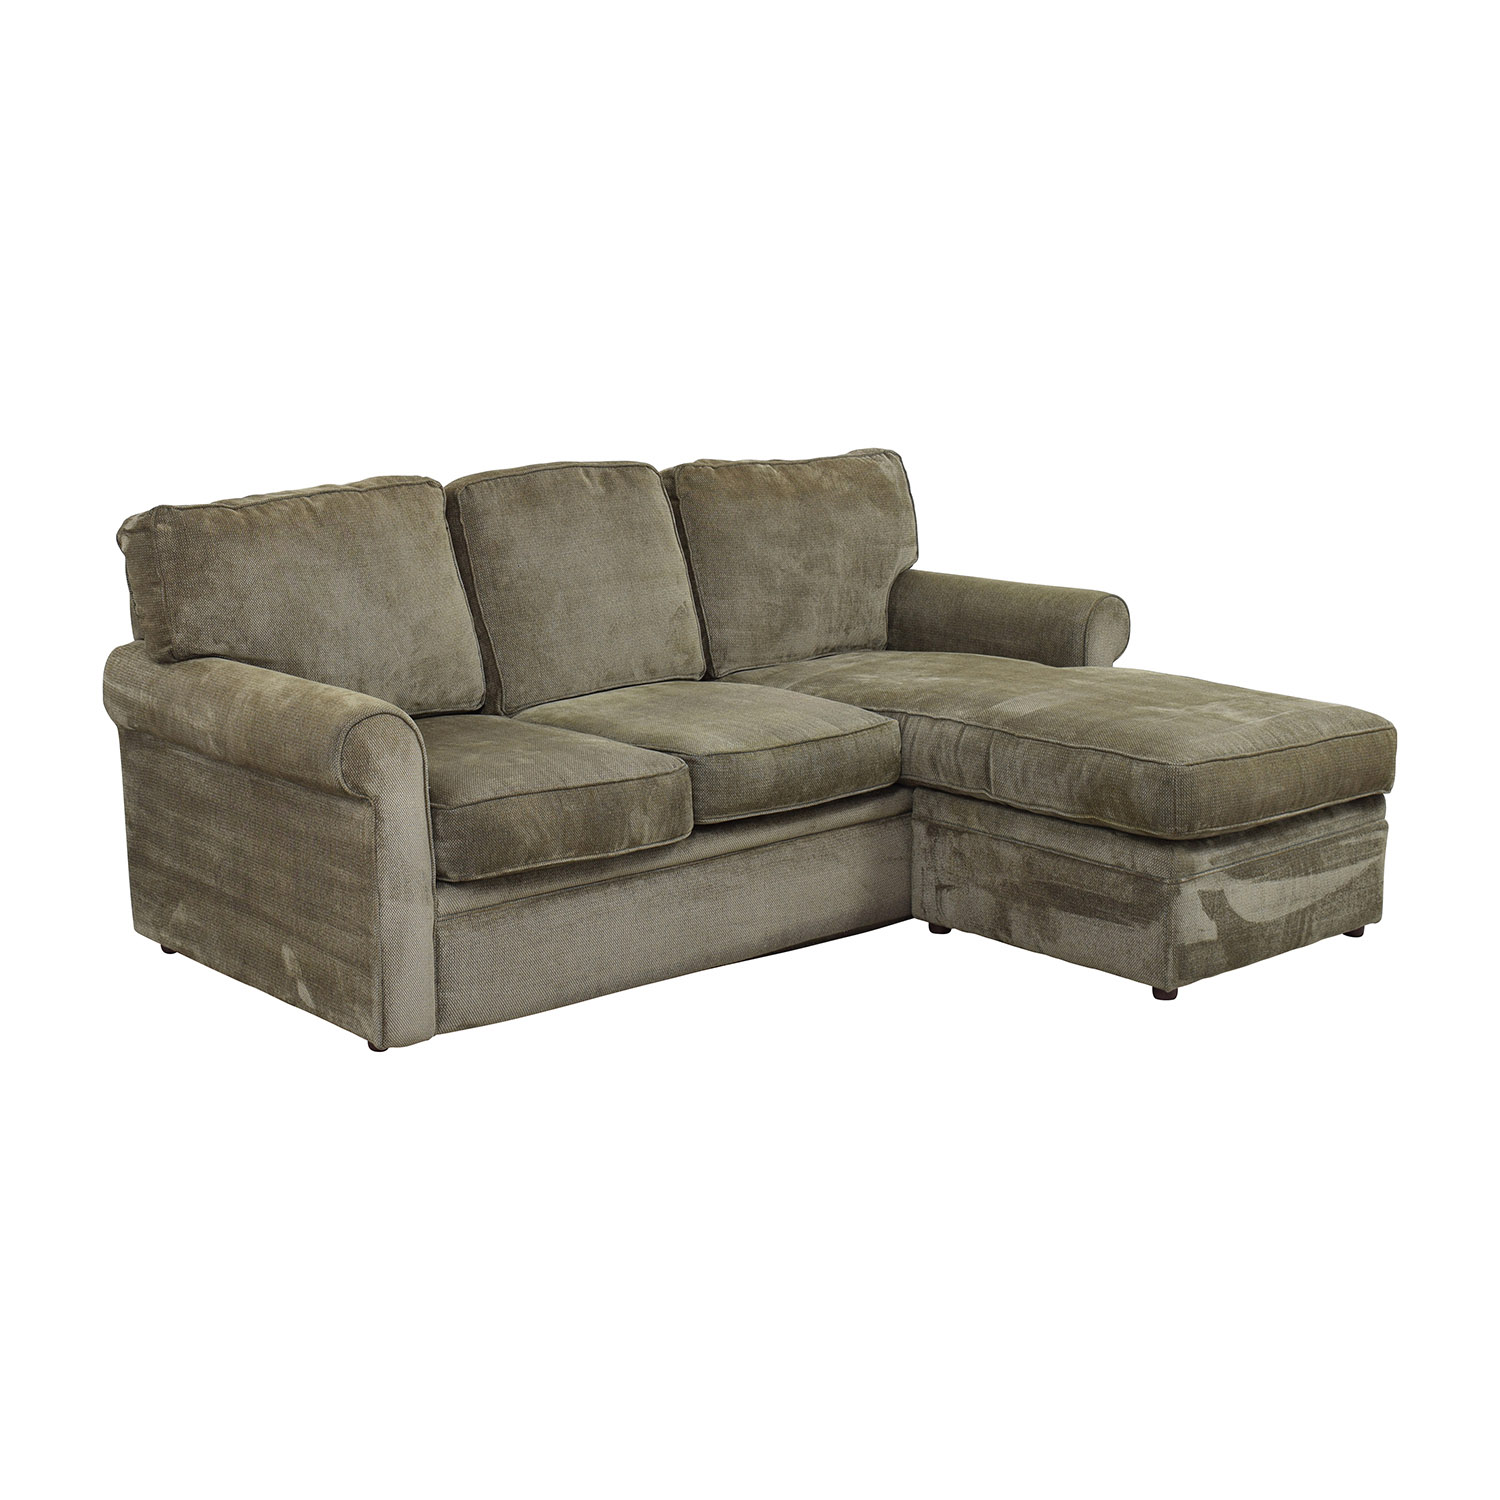 Rowe Furniture Rowe Furniture Green Sectional with Curved Arms dimensions